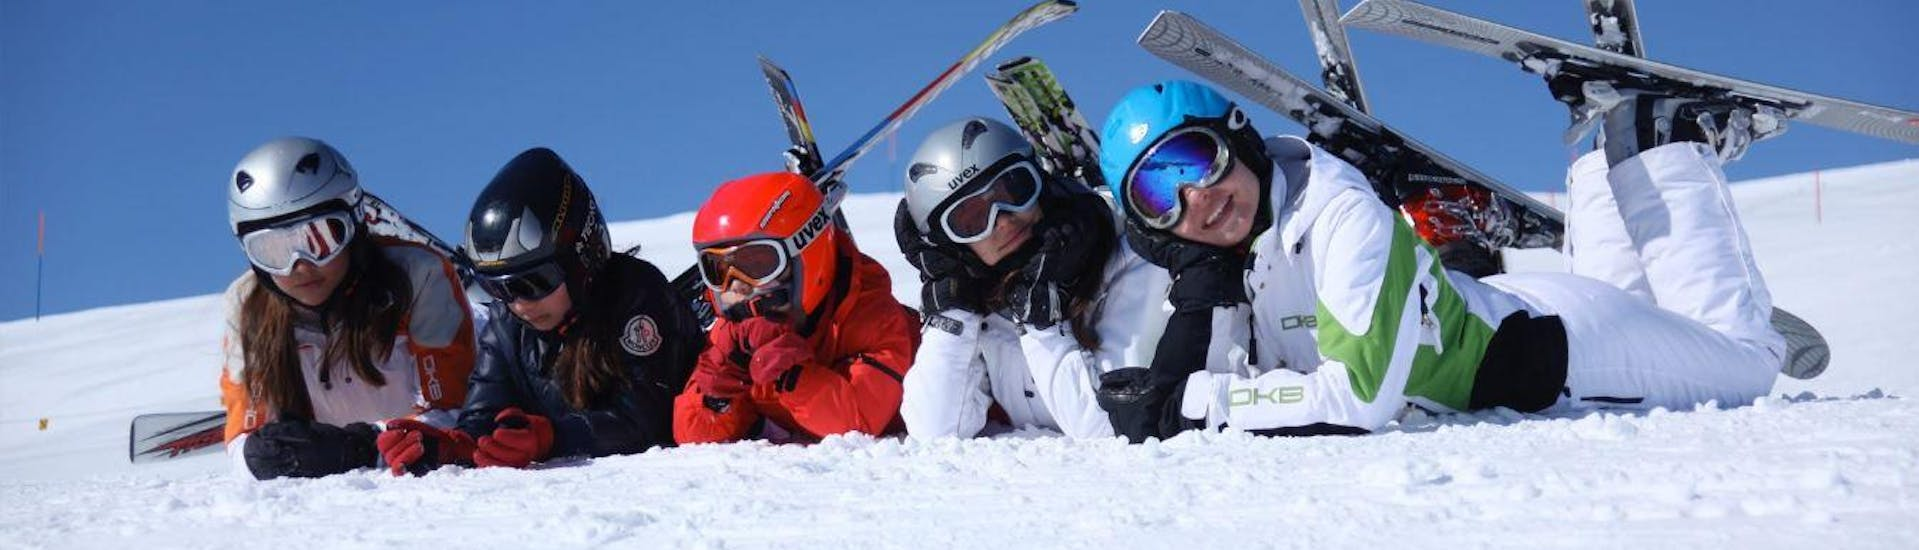 Adult Ski Lessons for All Levels with PassionSki - St. Moritz - Hero image